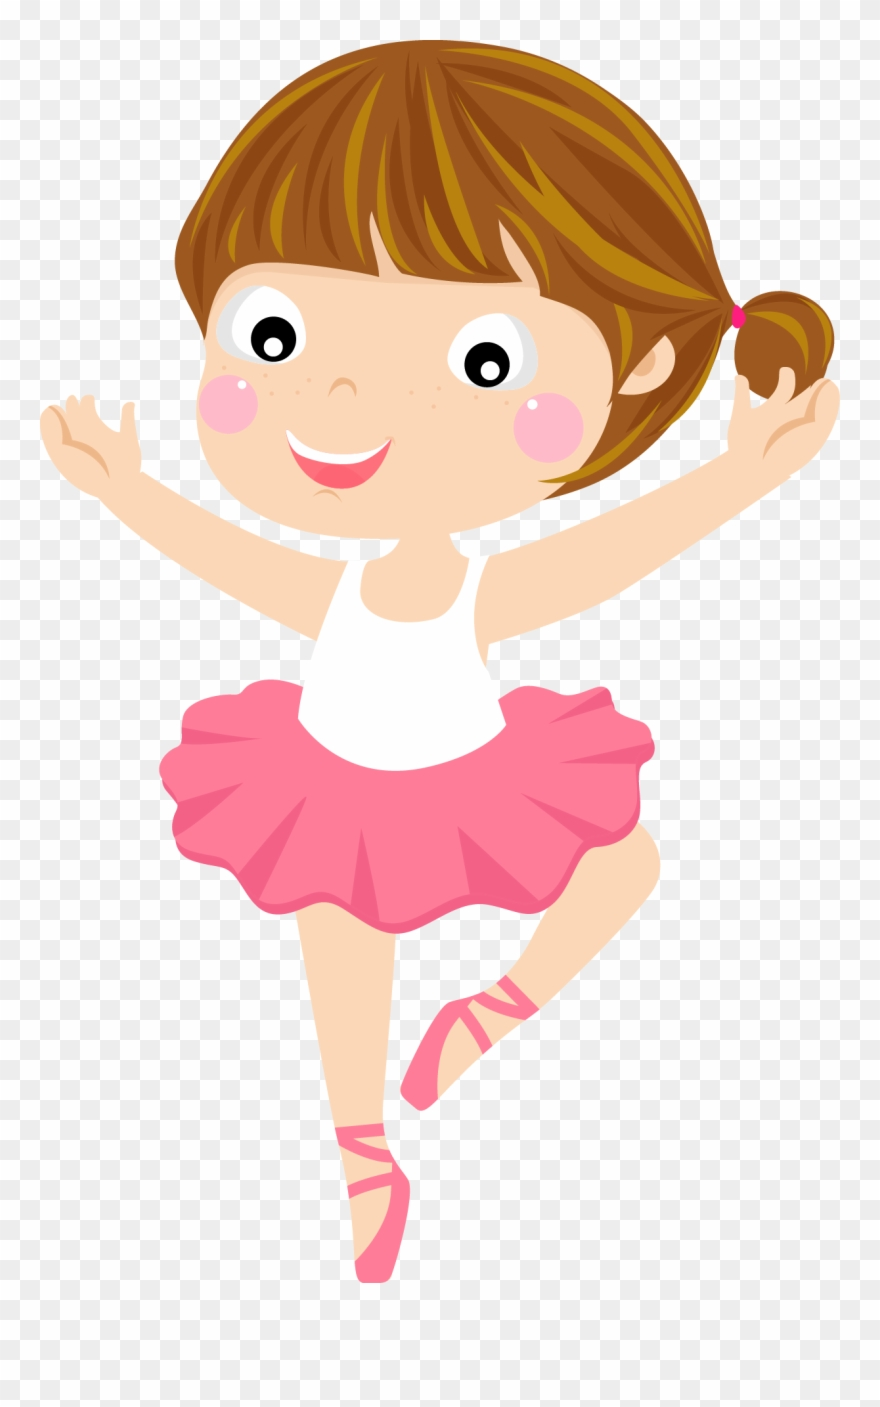 Ballerina with brown hair clipart picture download Ballet Cartoon Dancer Clipart (#2655145) - PinClipart picture download